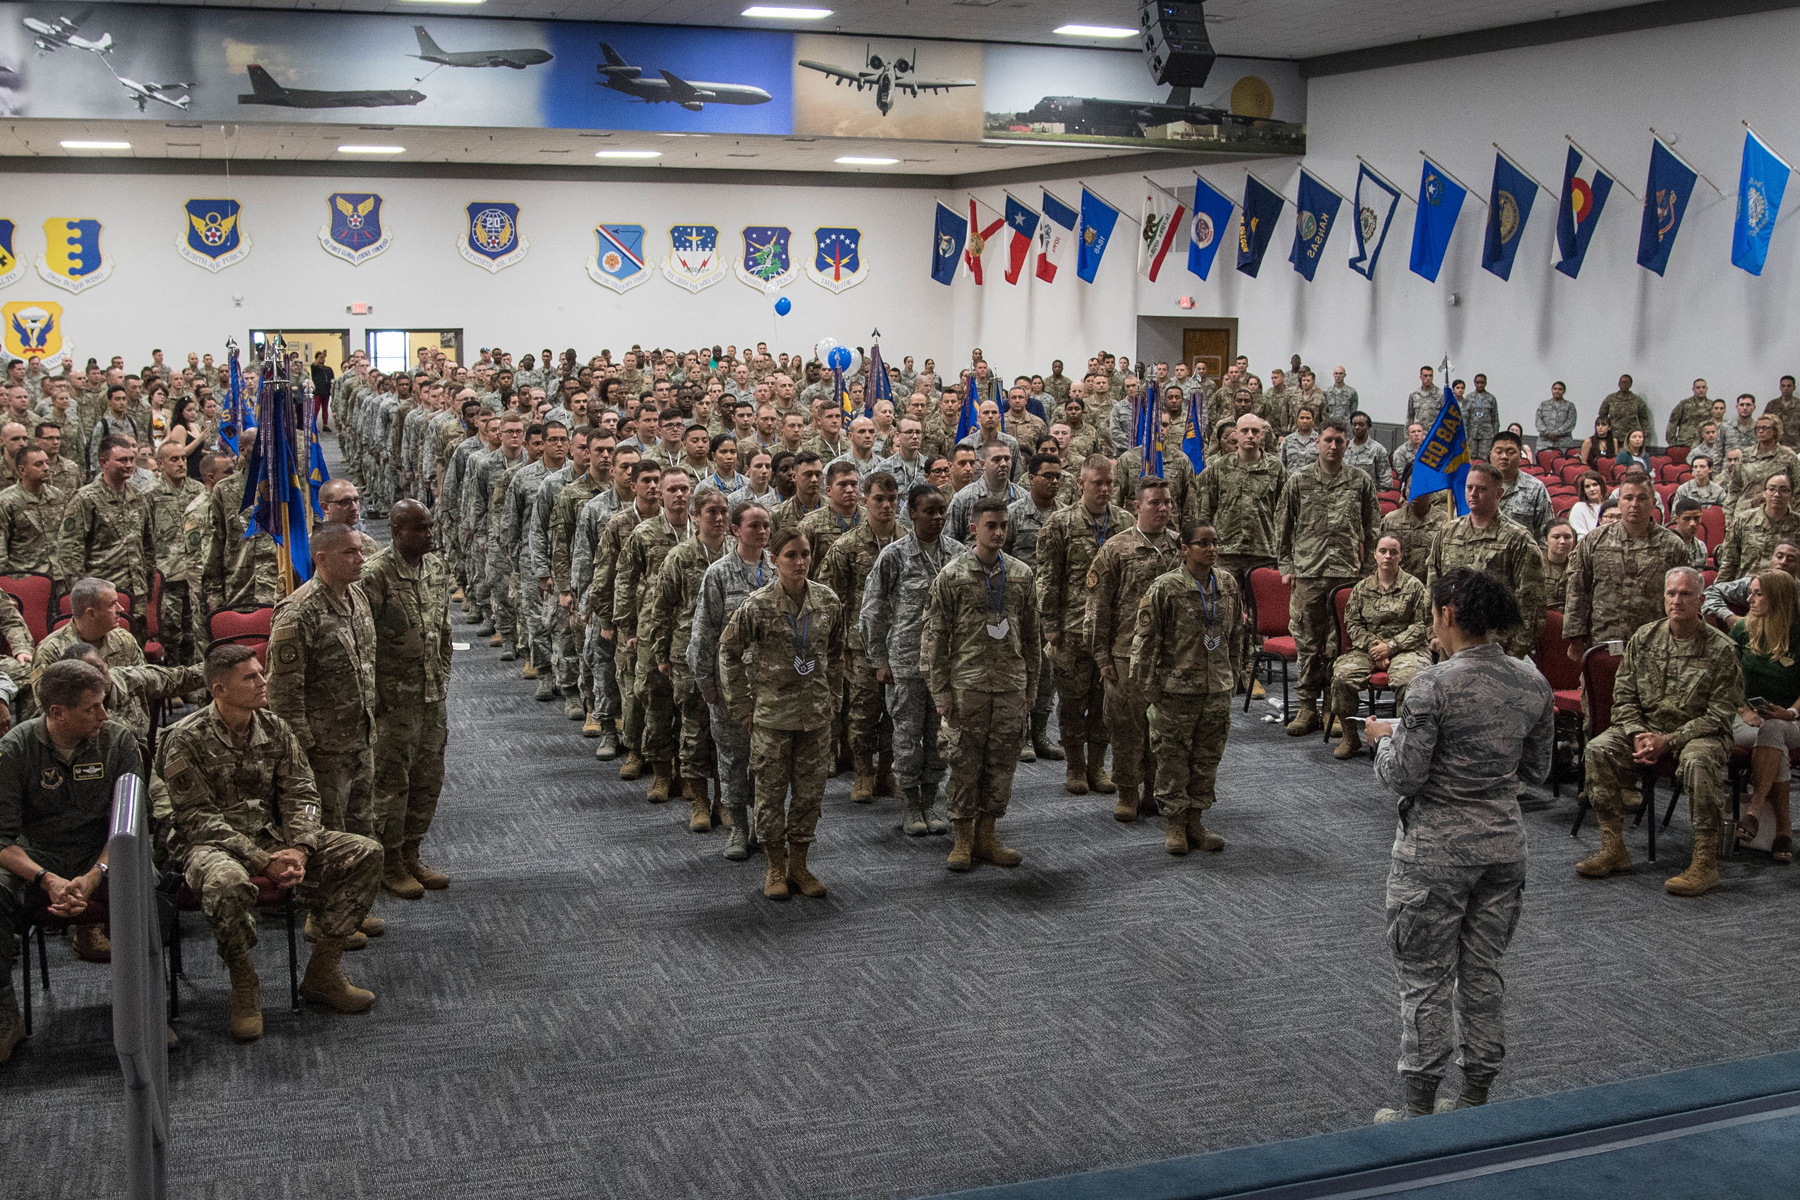 Air Force Reserve Changes to Provide More Enlisted Promotion Opportunities